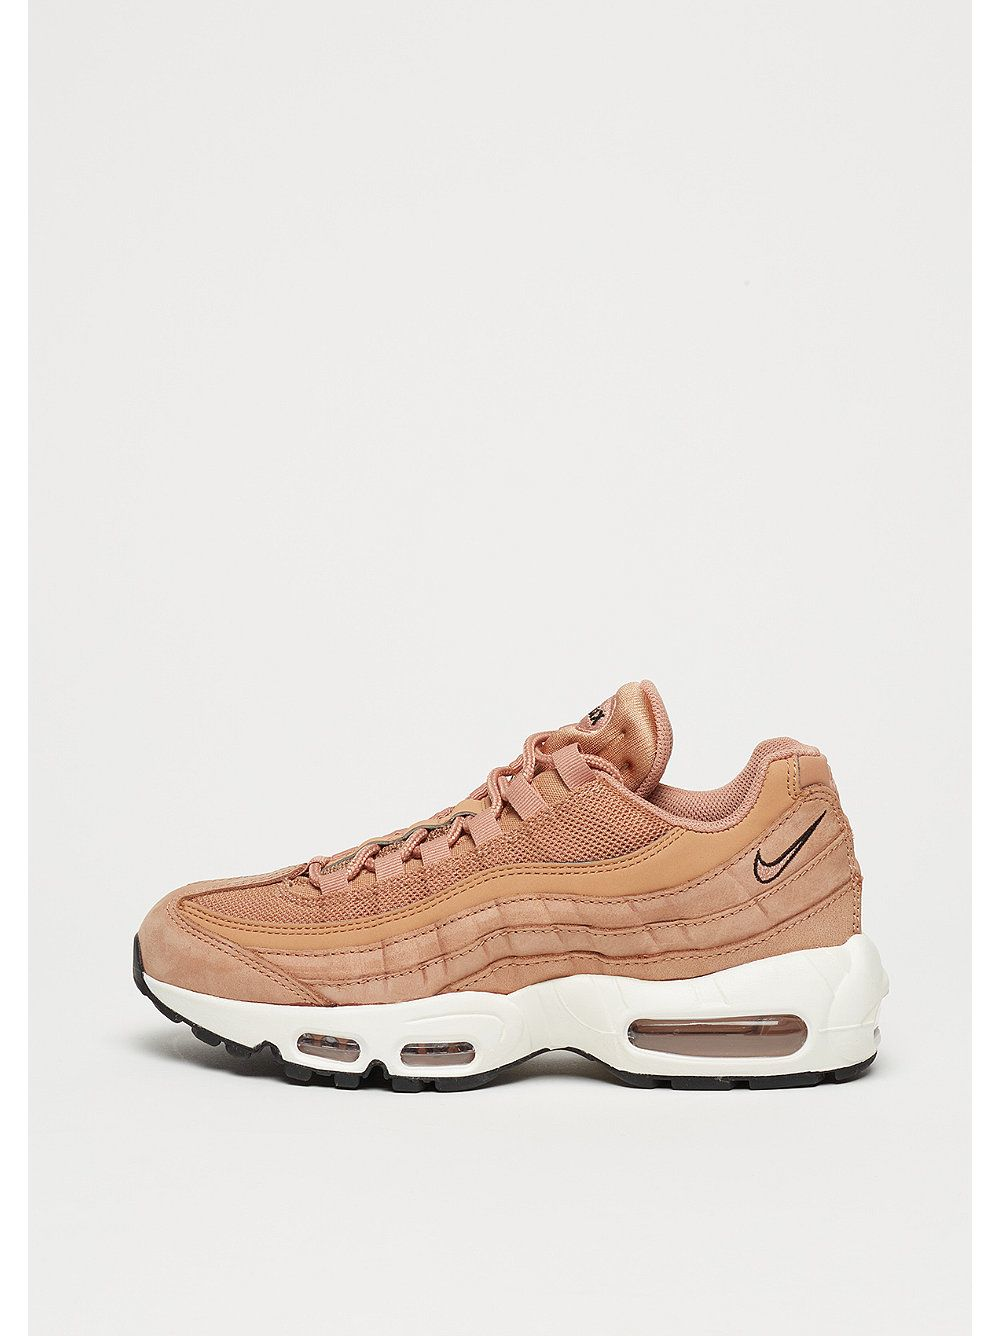 nike air max 95 dusted clay nz